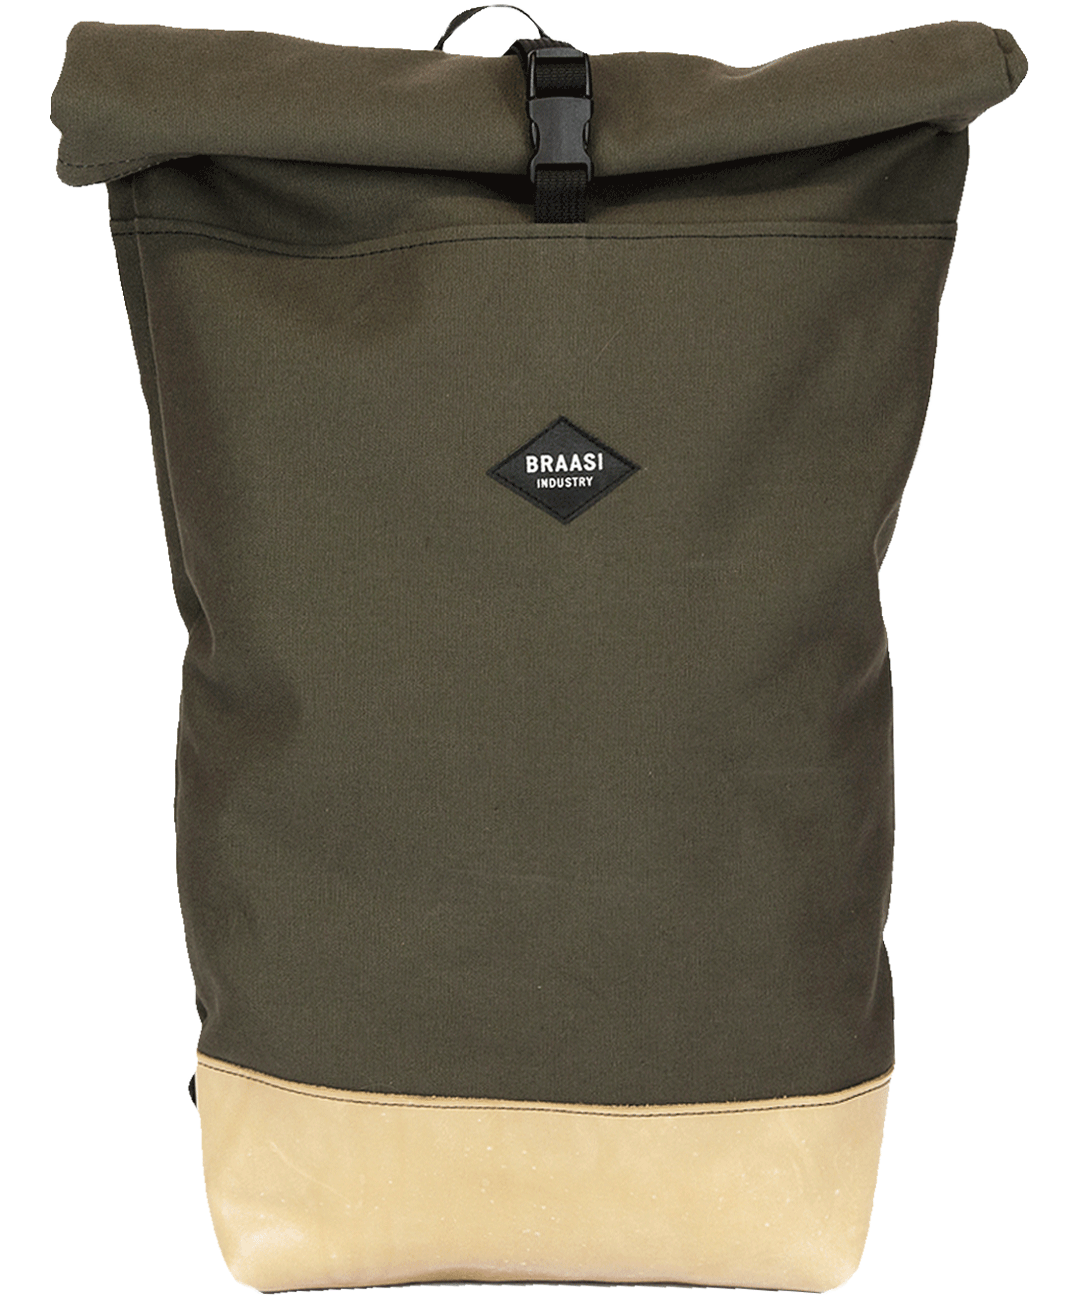 THE ROLLTOP 16ltr BACKPACK IN KHAKI BY BRAASI INDUSTRIES™